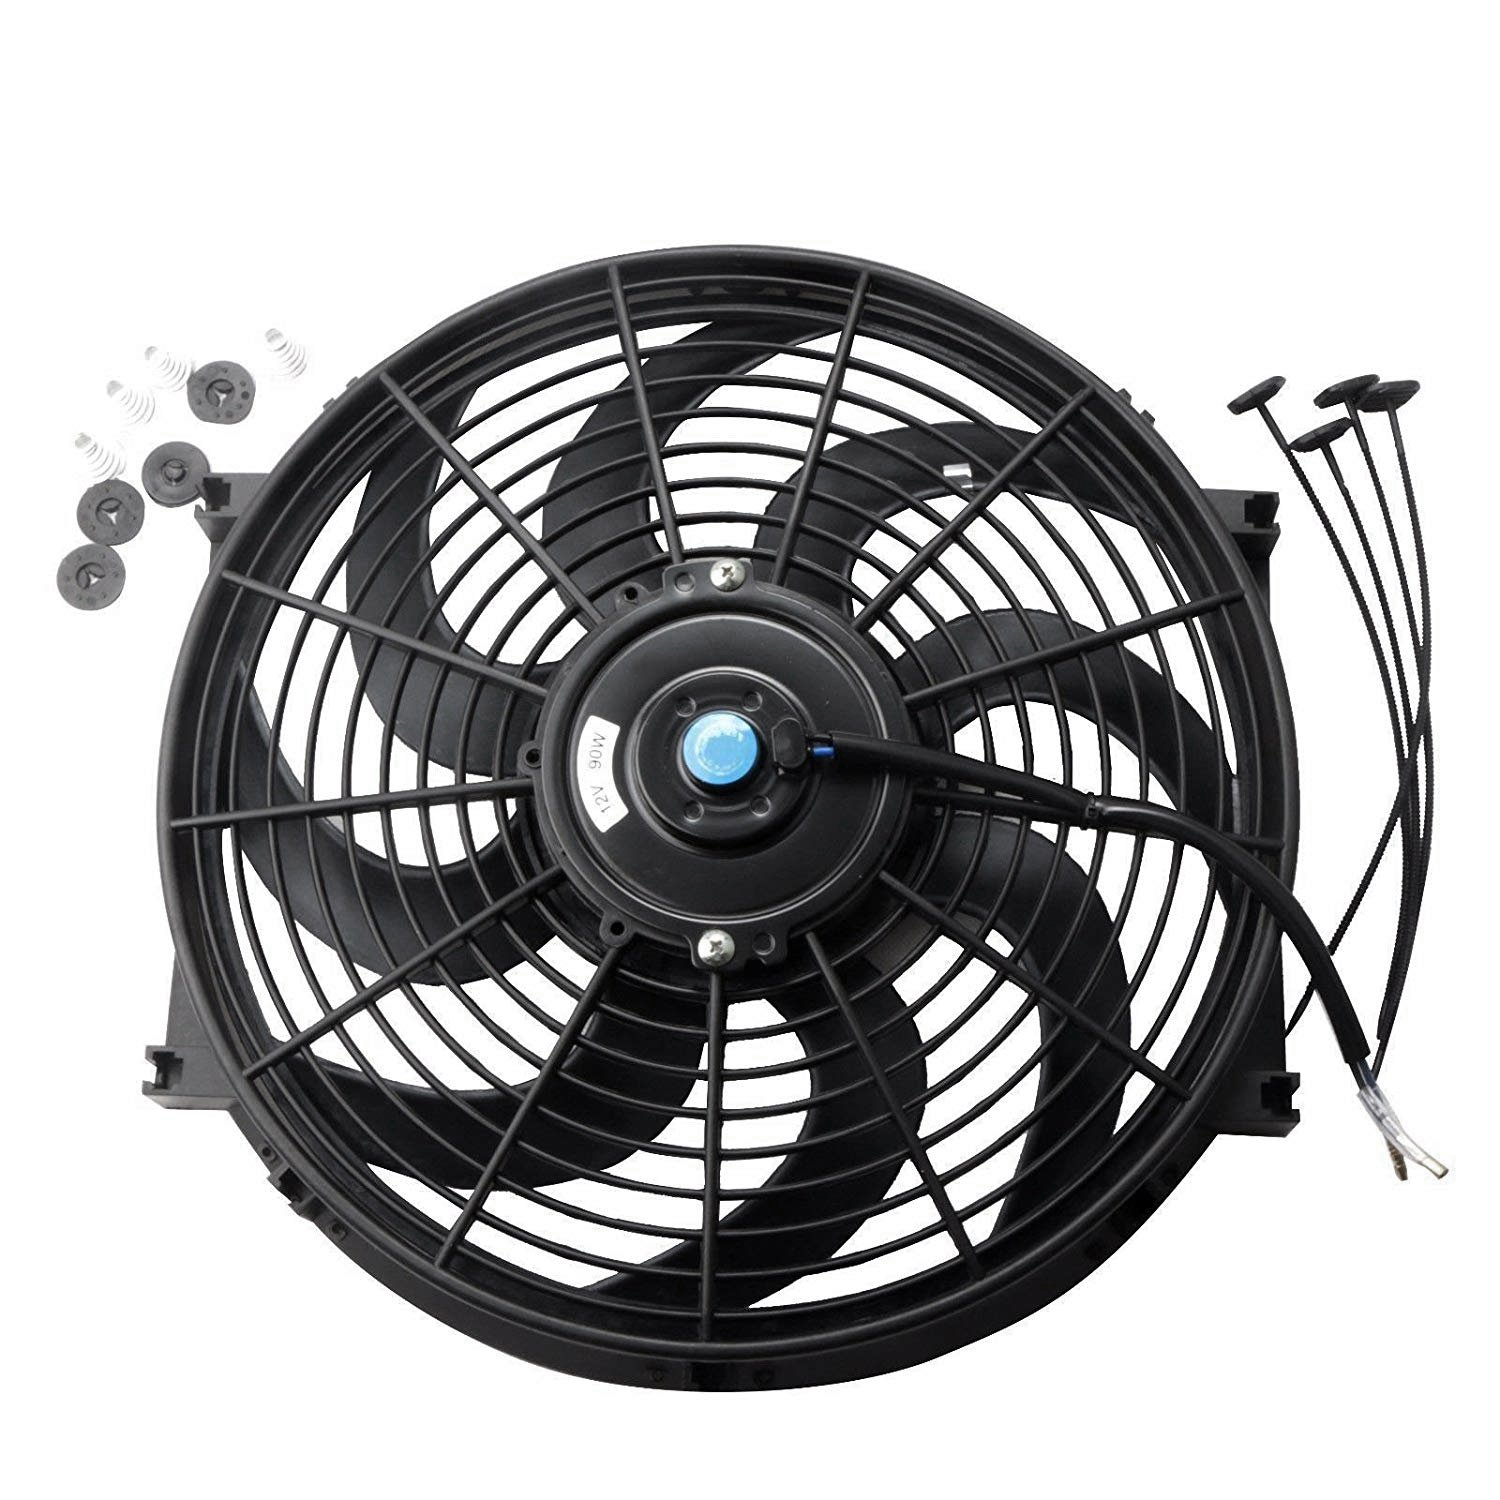 Back To Search Resultsautomobiles & Motorcycles Reasonable Hypertune 14 Inch Universal Slim Fan Push Pull Electric Radiator Cooling 12v 90w Mount Kit Ht-fan14 Cooling System